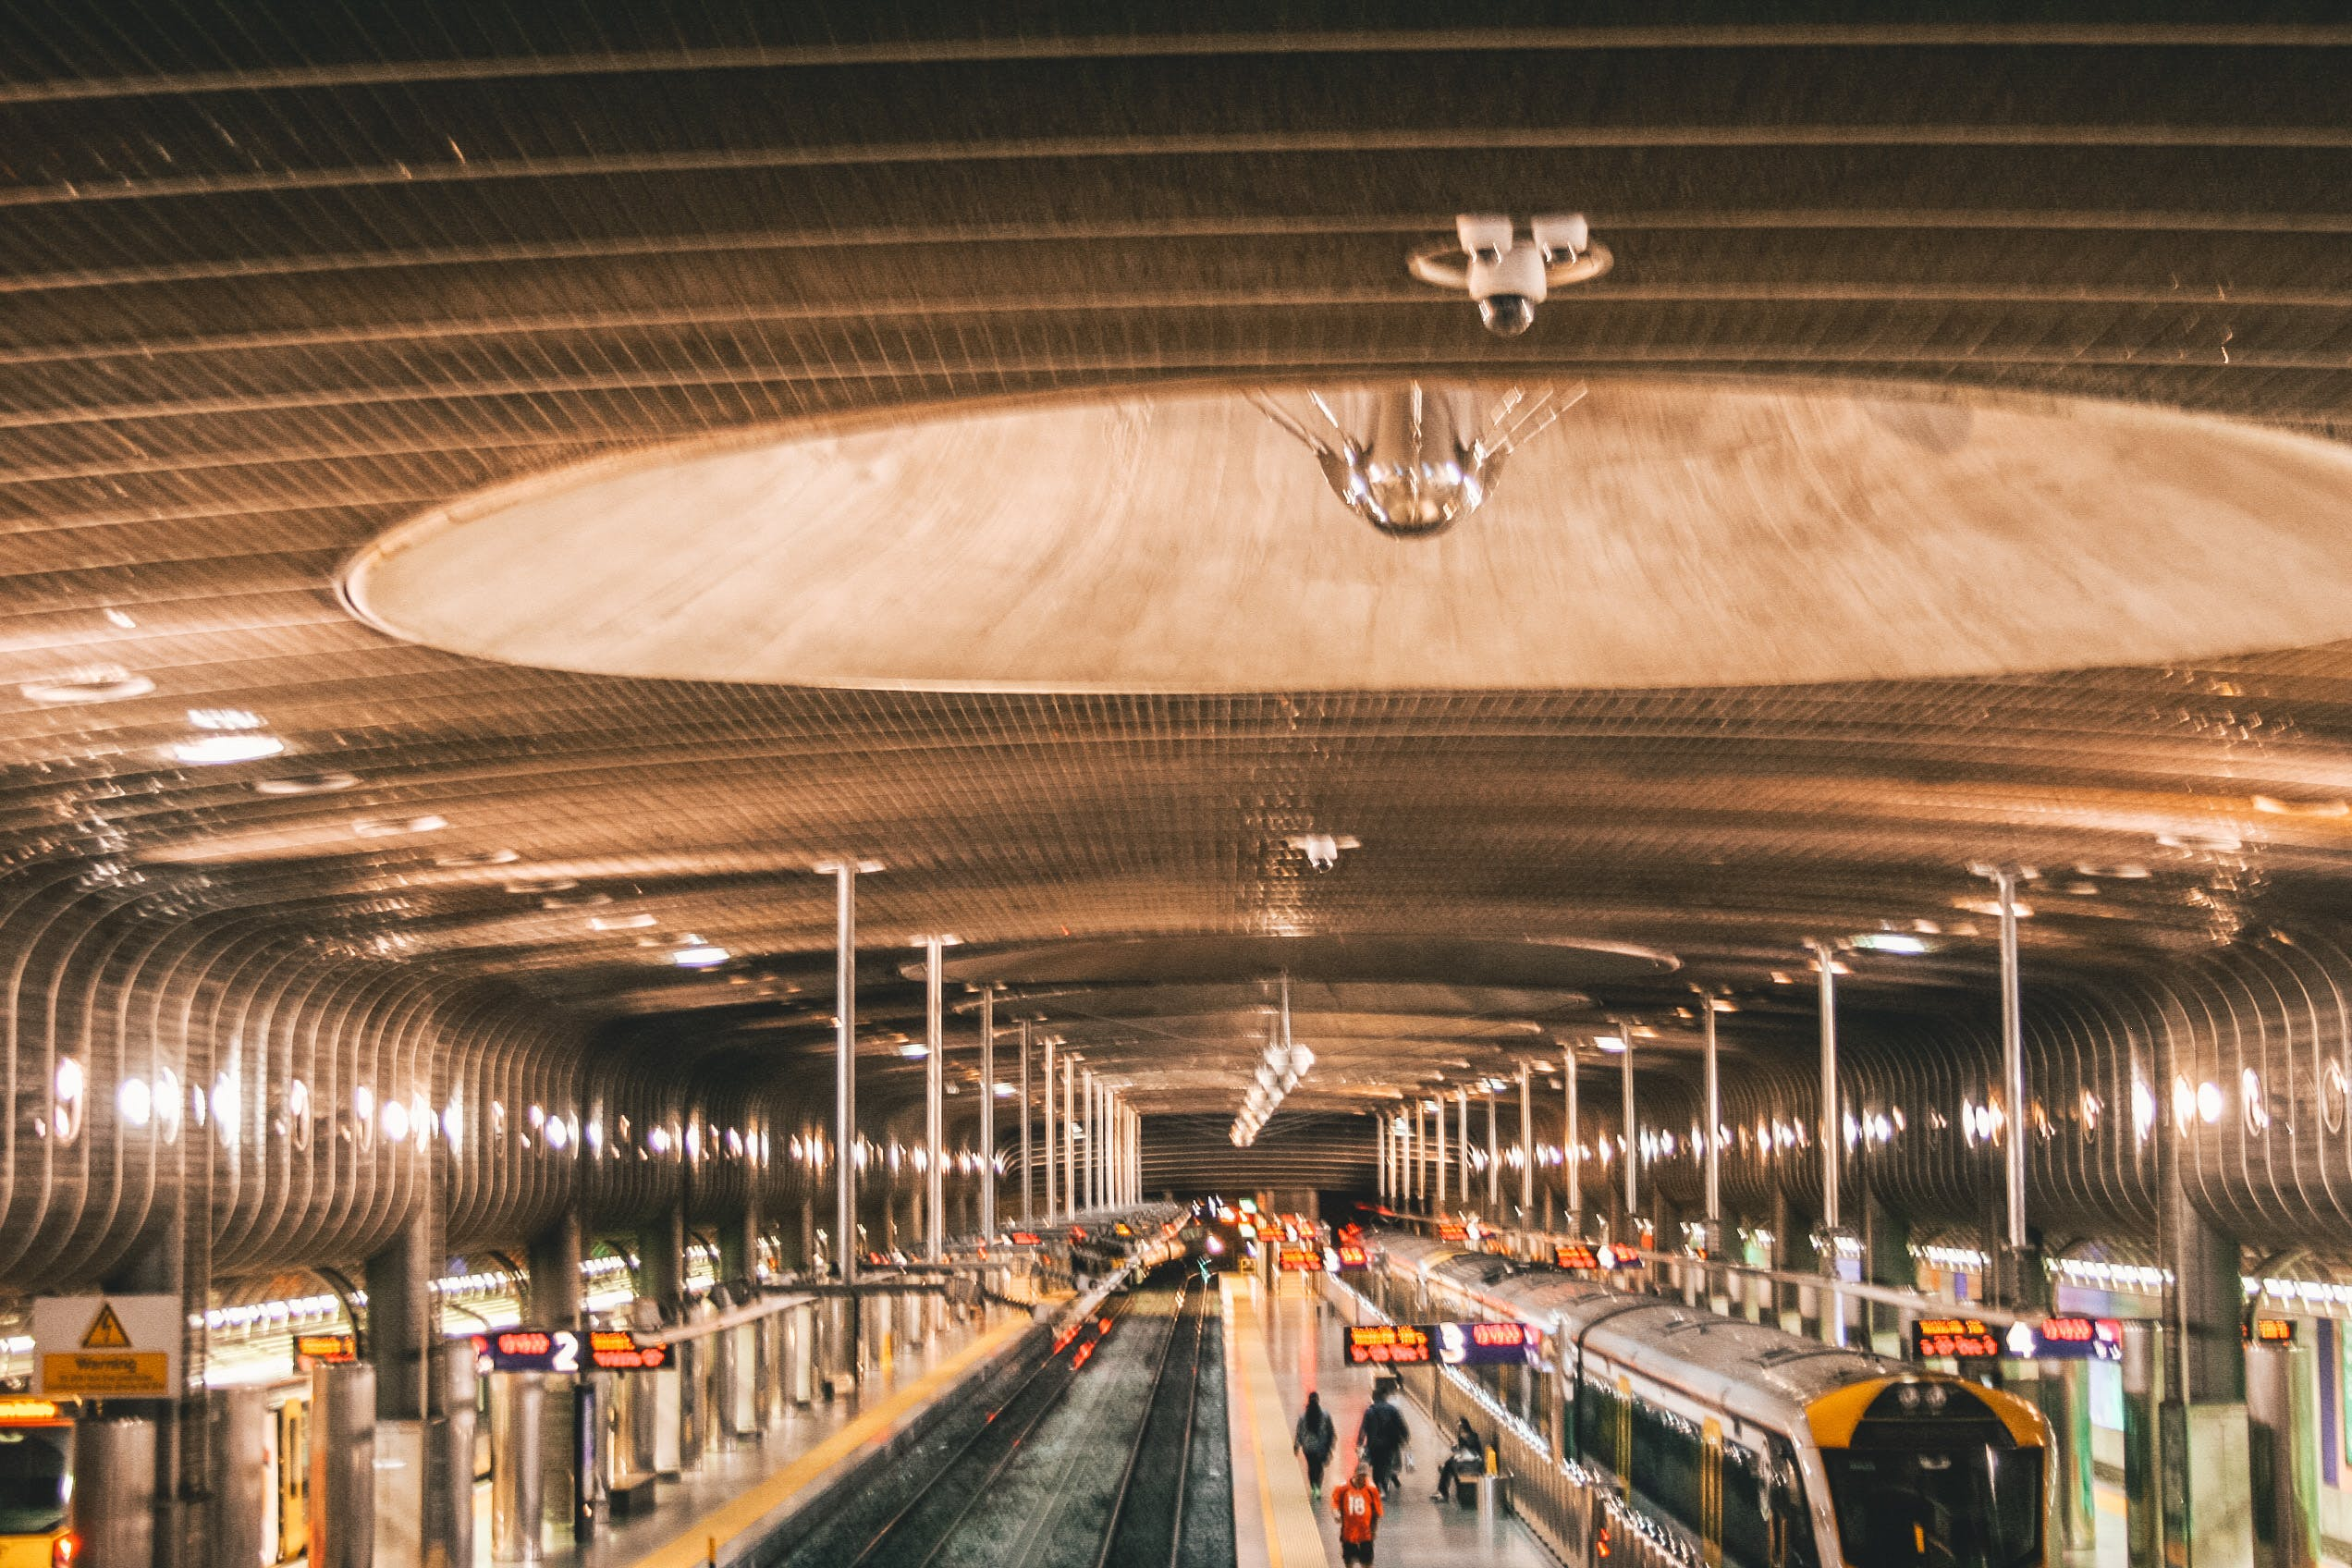 Free stock photo of train station